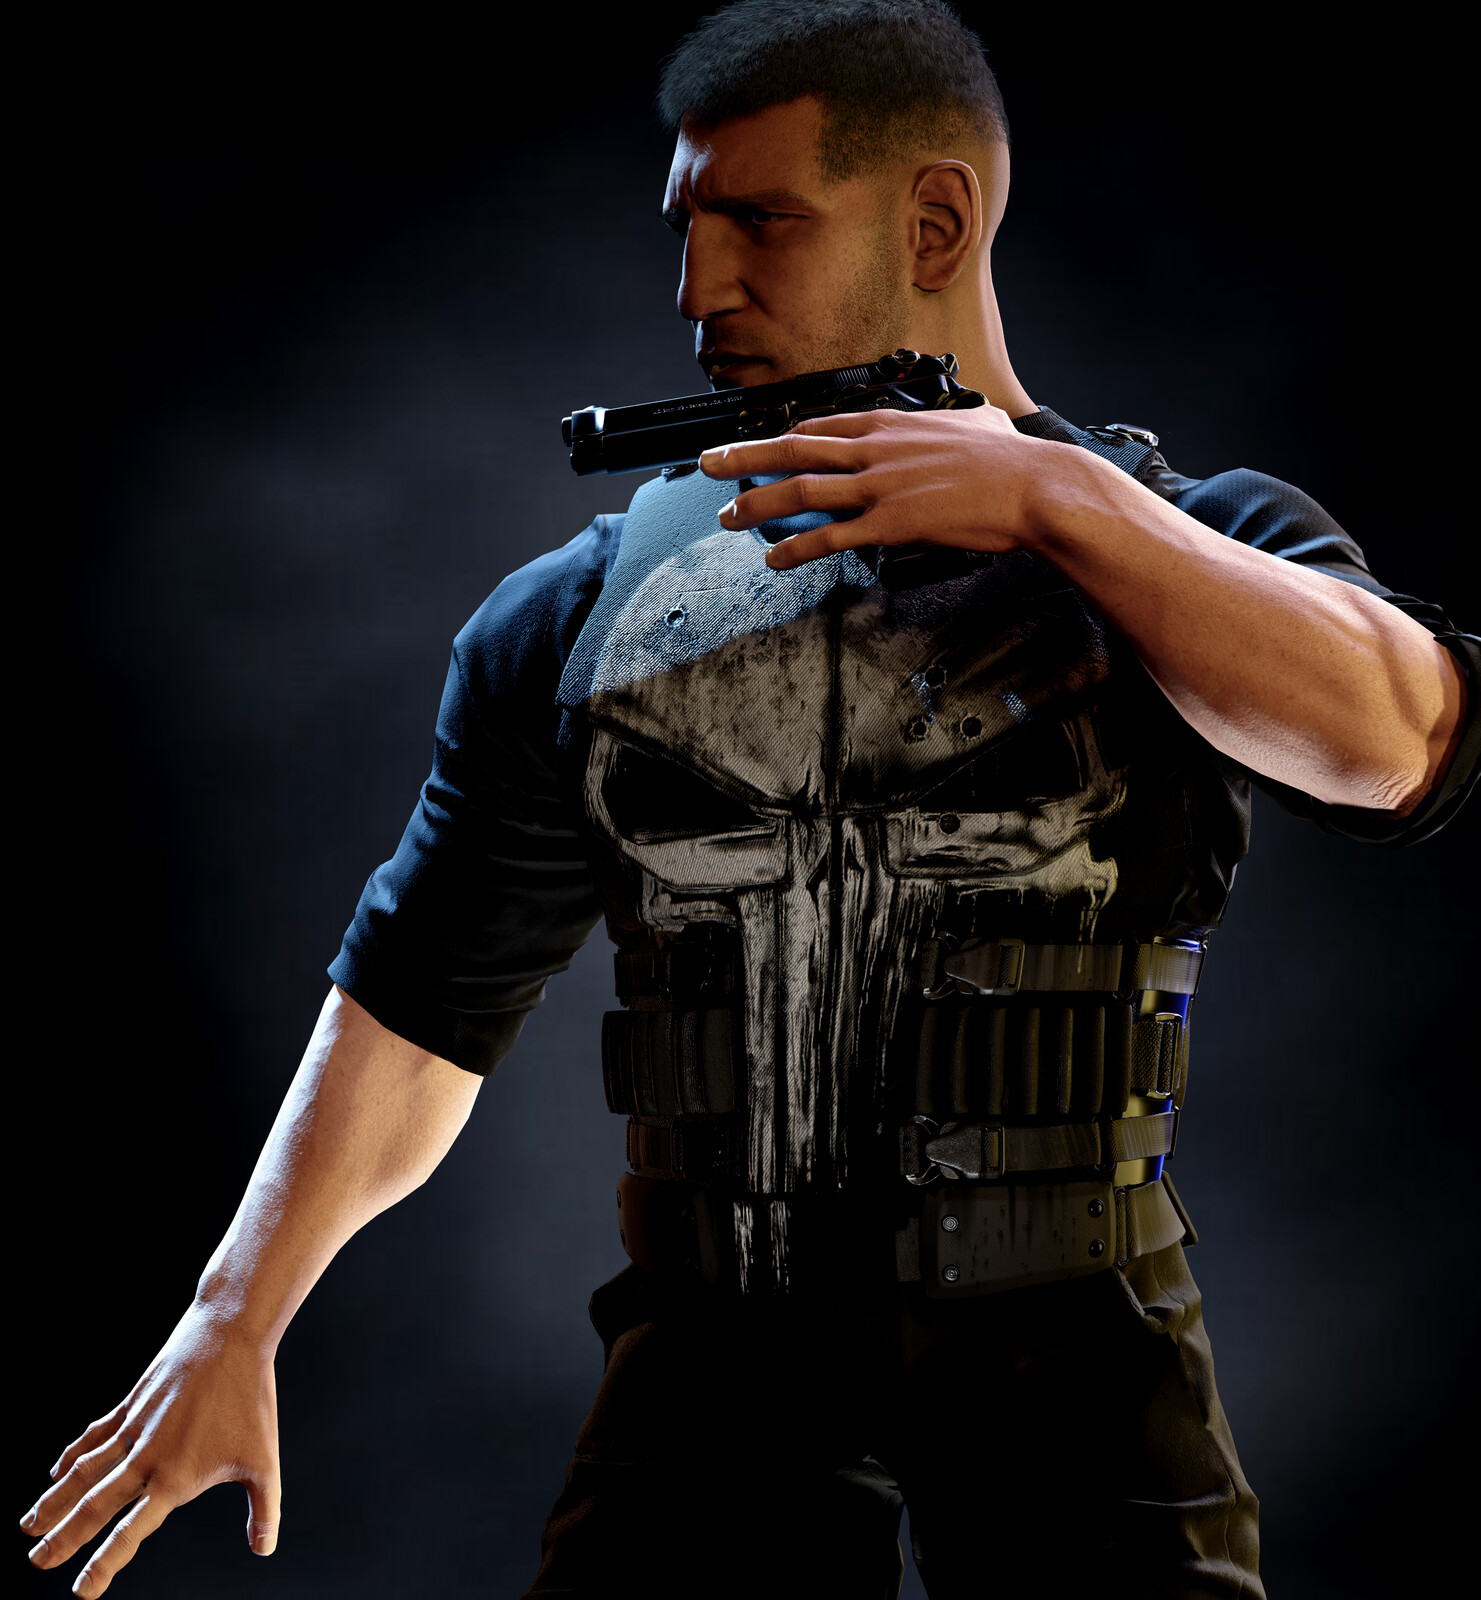 Low res render in a pose